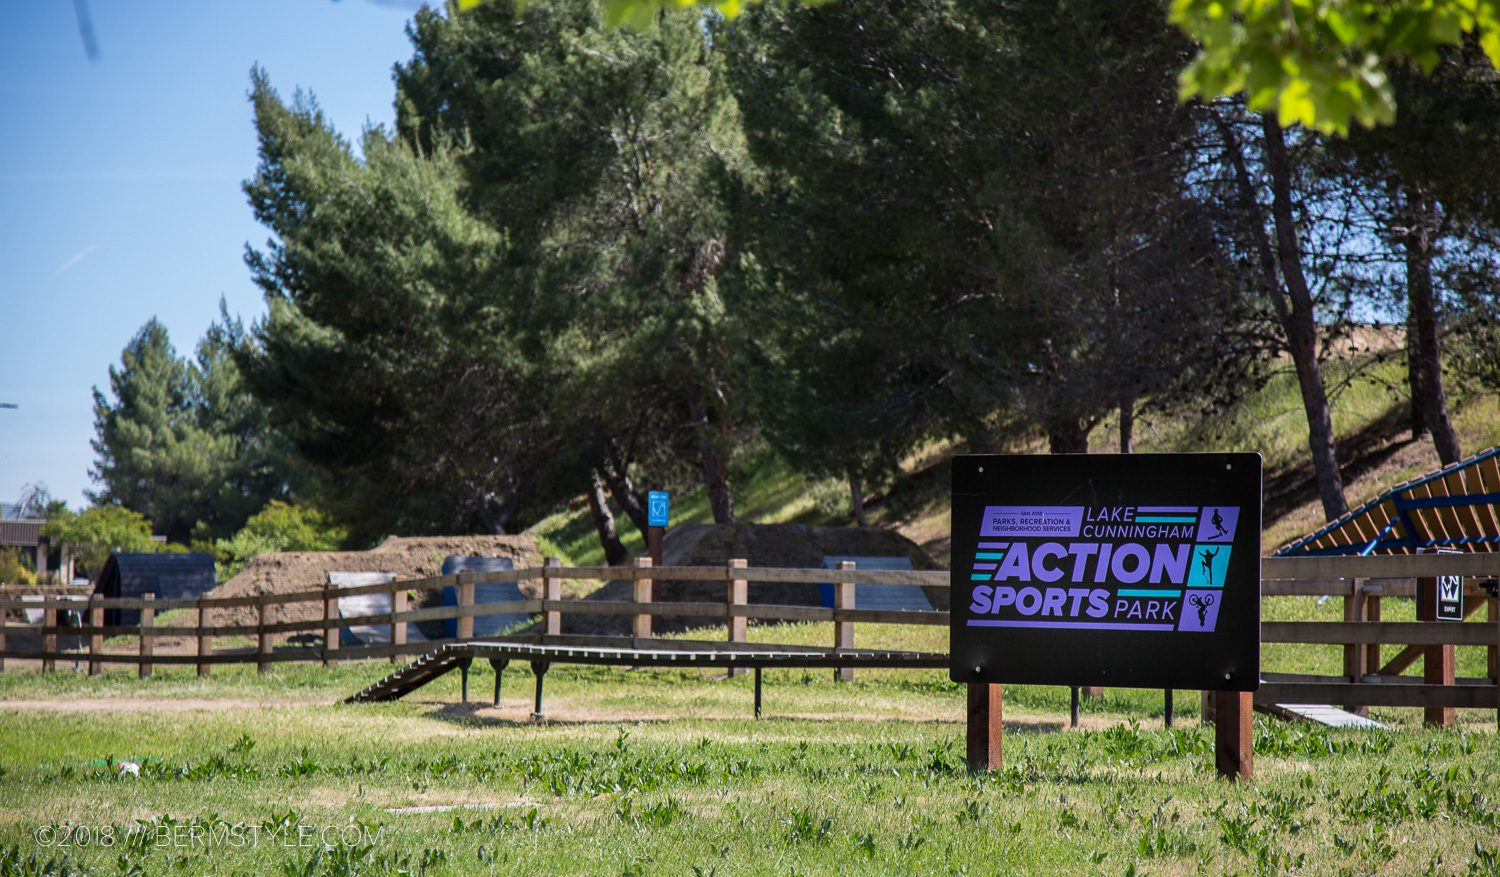 Lake Cunningham Action Sports Park, San Jose